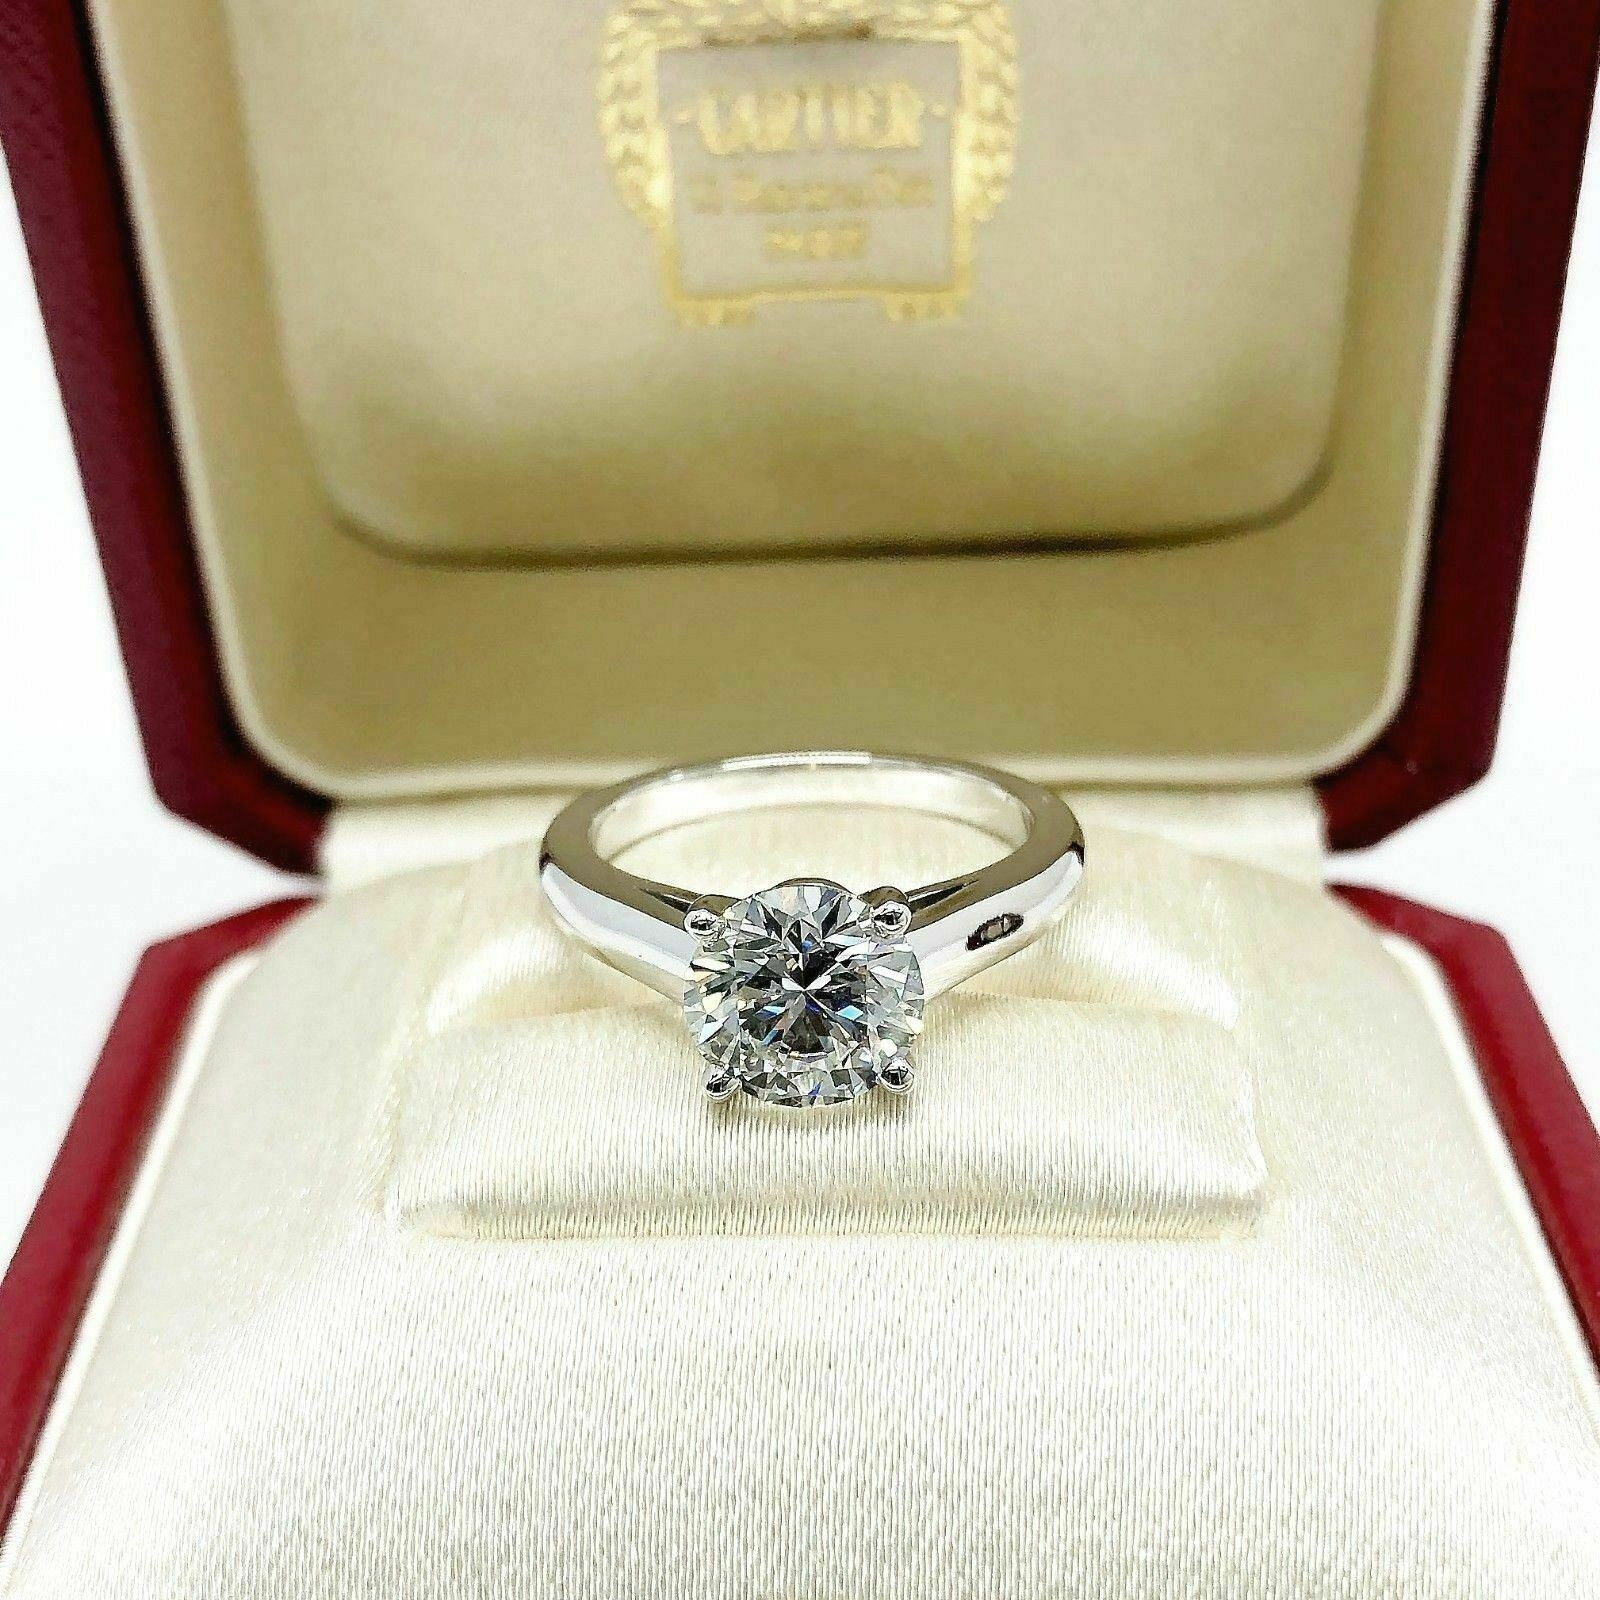 Original Cartier Platinum Ring 2.14 Carats GIA G VS1 Round Diamond Cut w Reciept